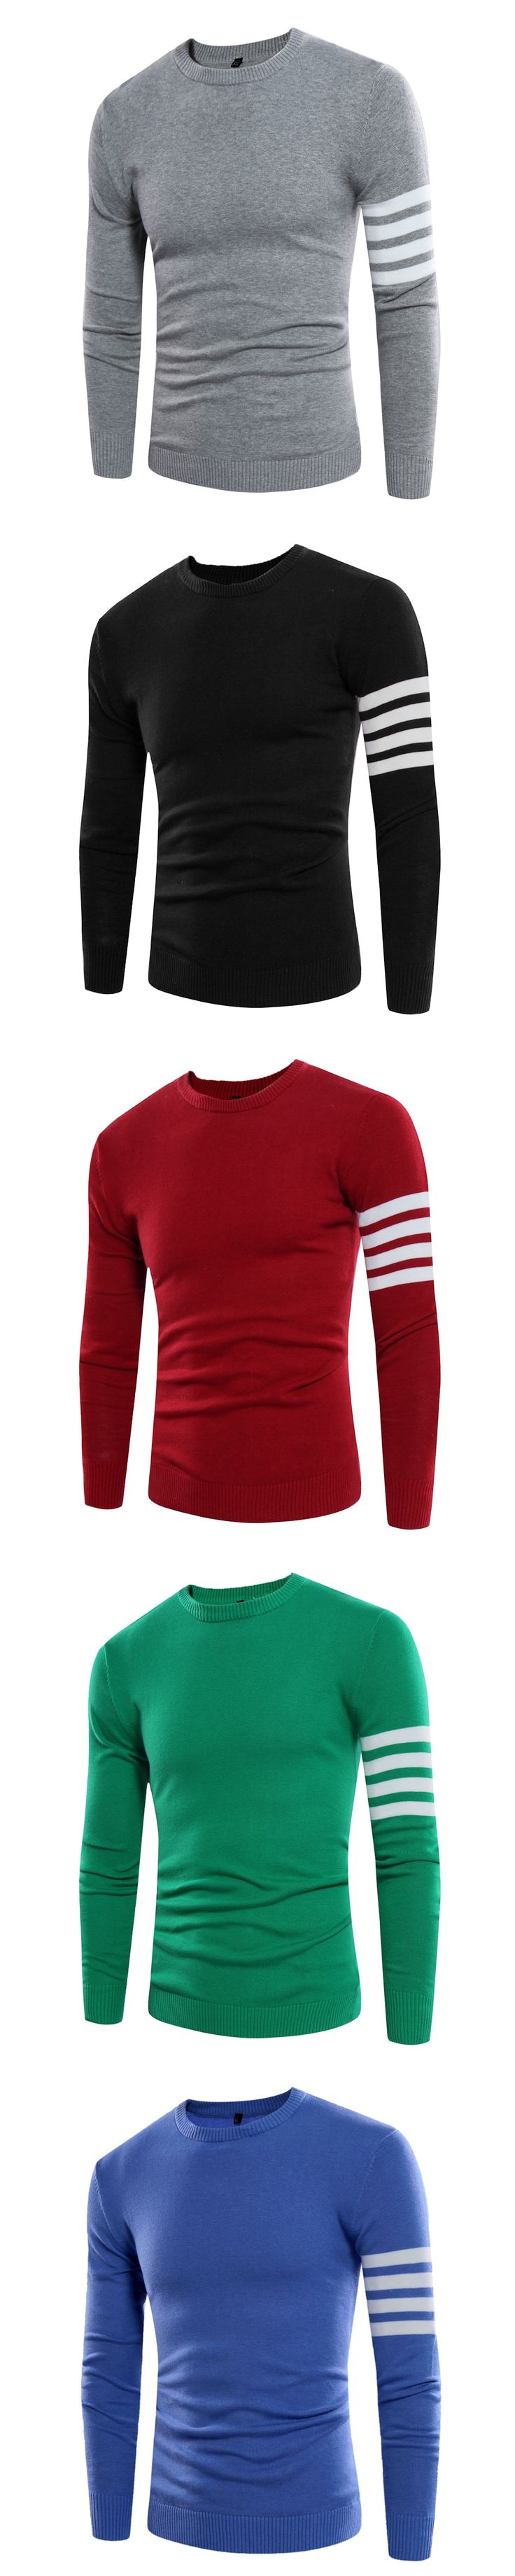 2017 Spring Men Knitted Sweaters Round neck Jumper Men's Cotton Pullover Thin White Sweater Brand Clothing 3XL